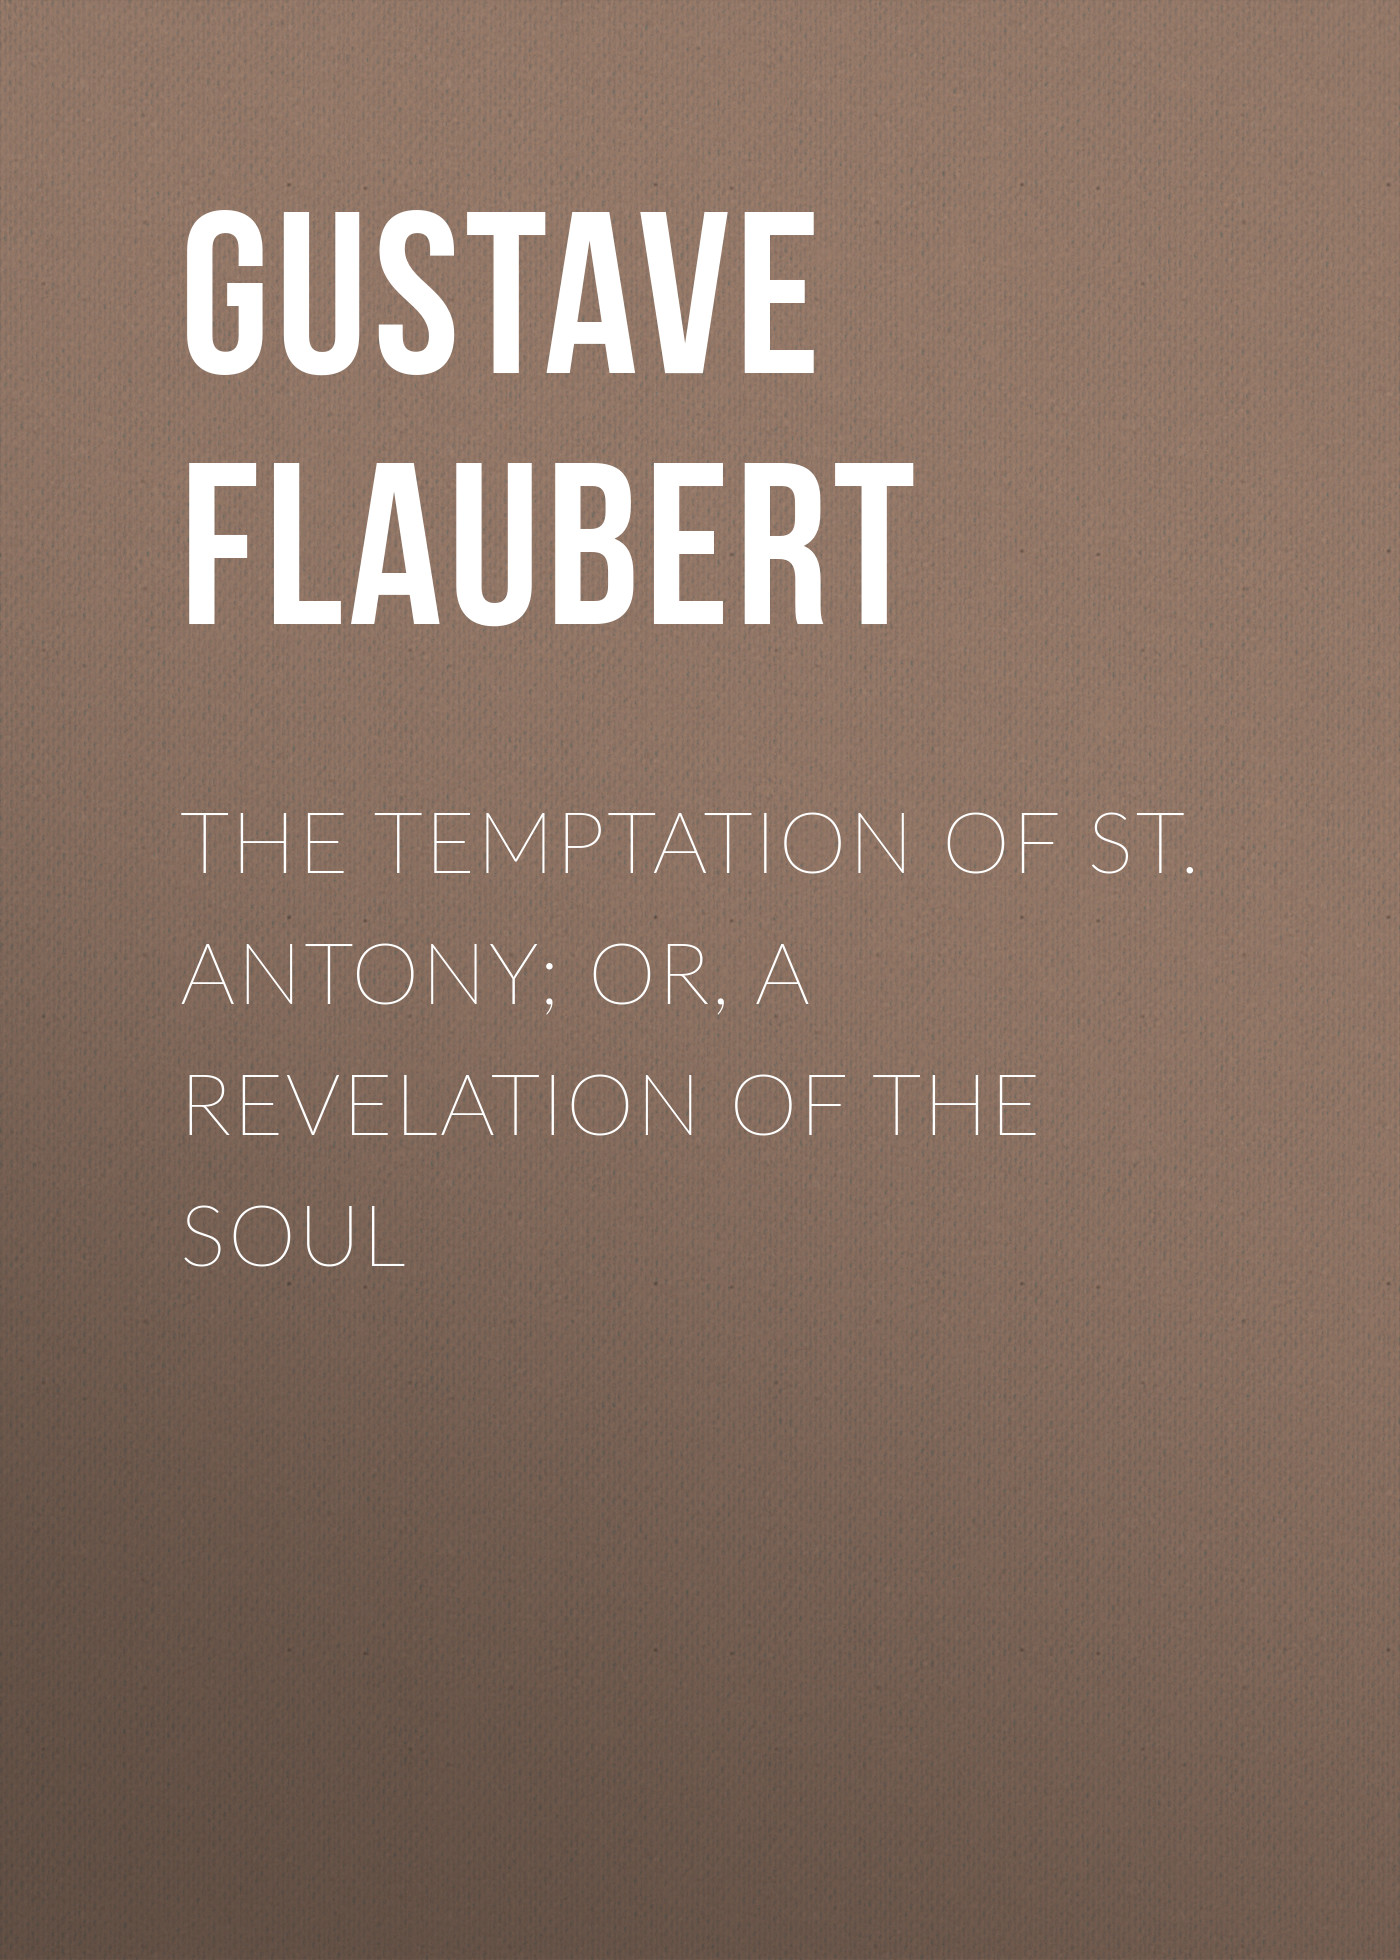 Gustave Flaubert The Temptation of St. Antony; Or, A Revelation of the Soul soul st xs white